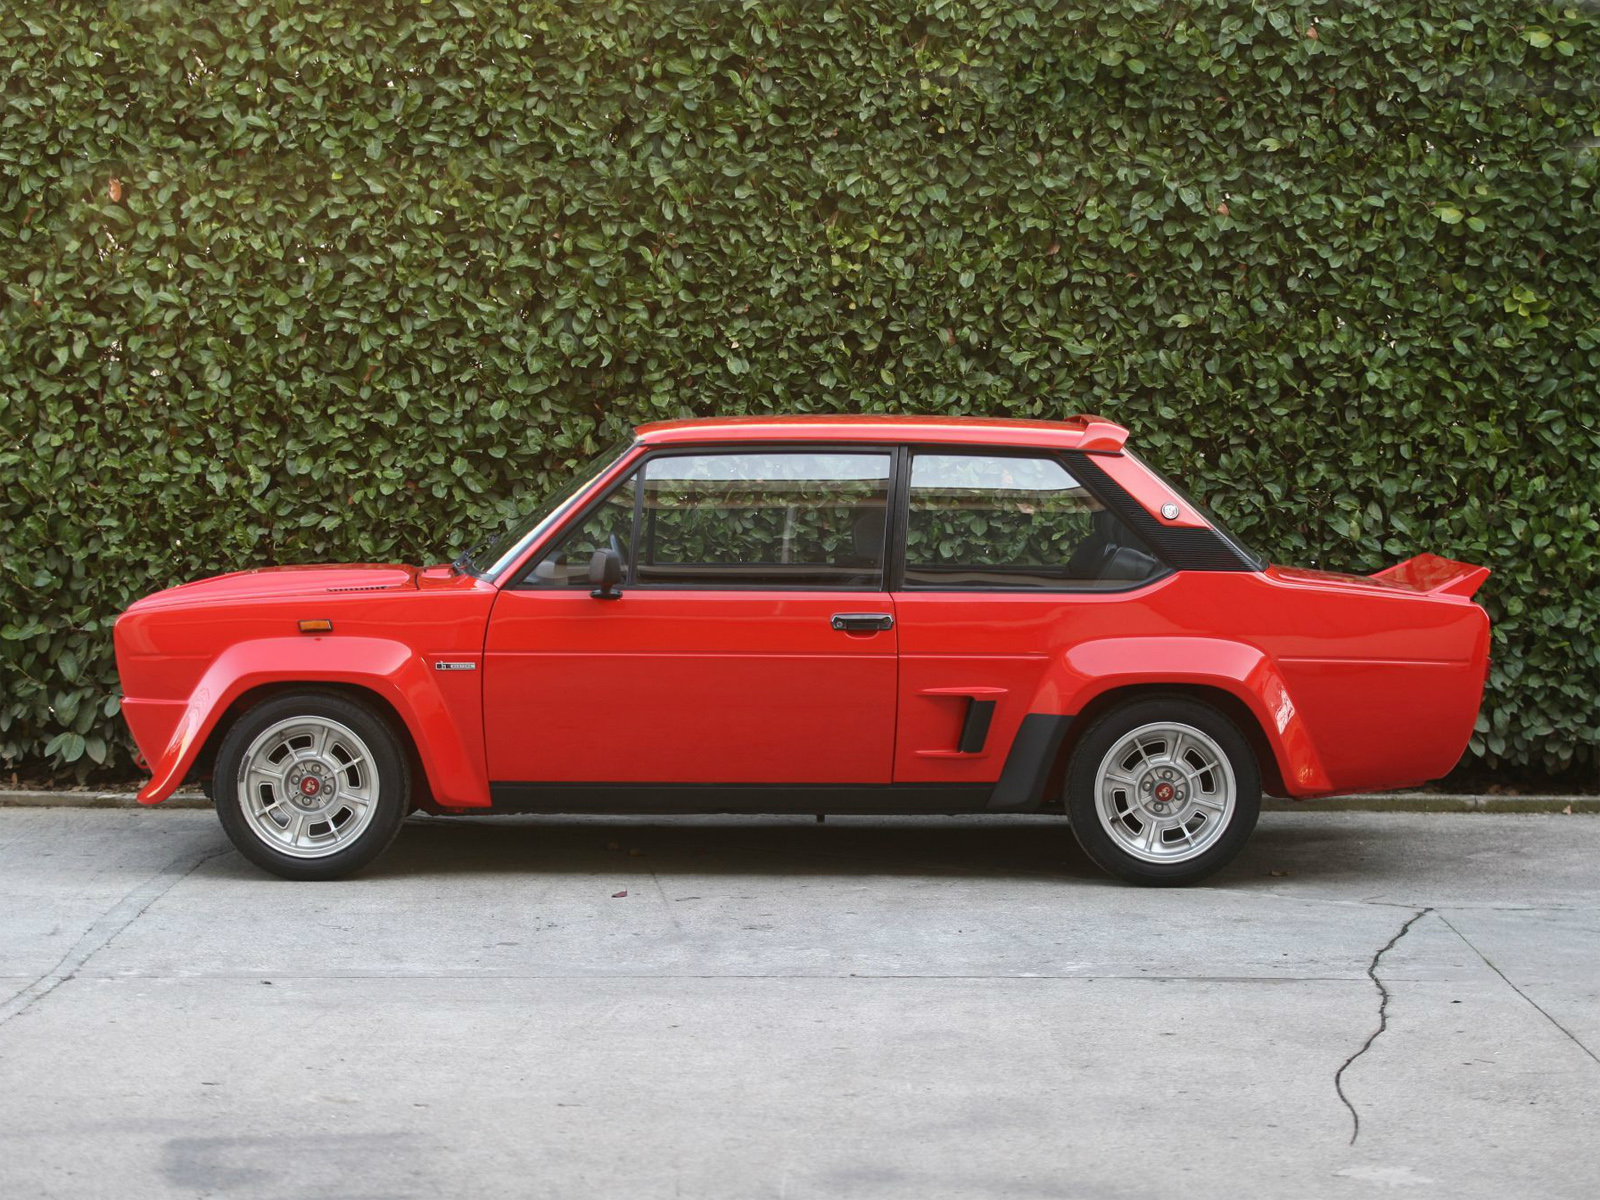 Fiat 131 Abarth Coupe 1976